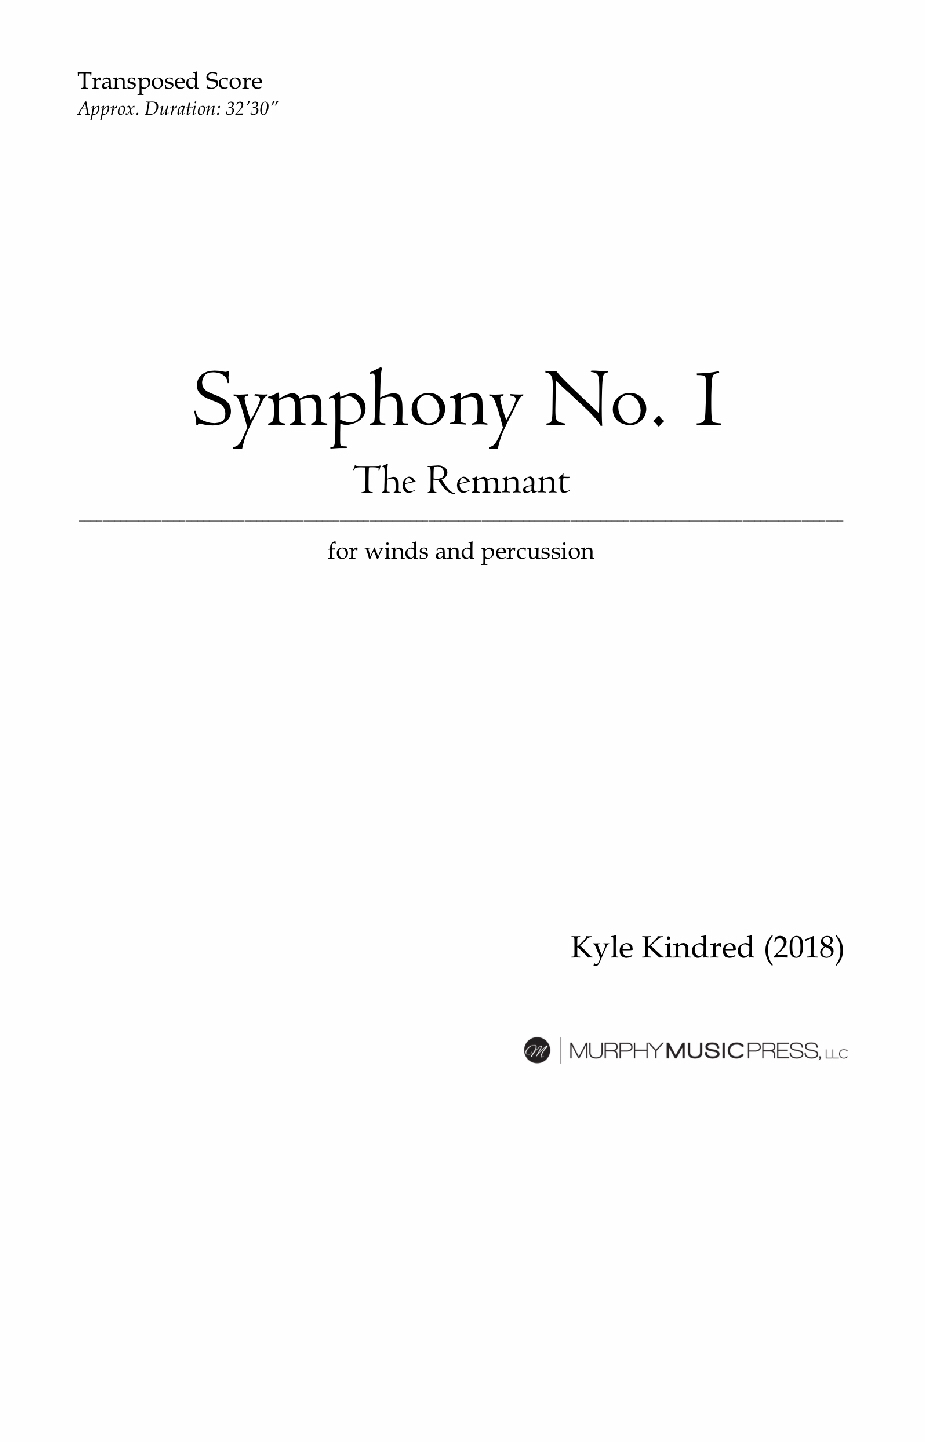 Symphony No. 1, The Remnant (parts Rental Only) by Kyle Kindred